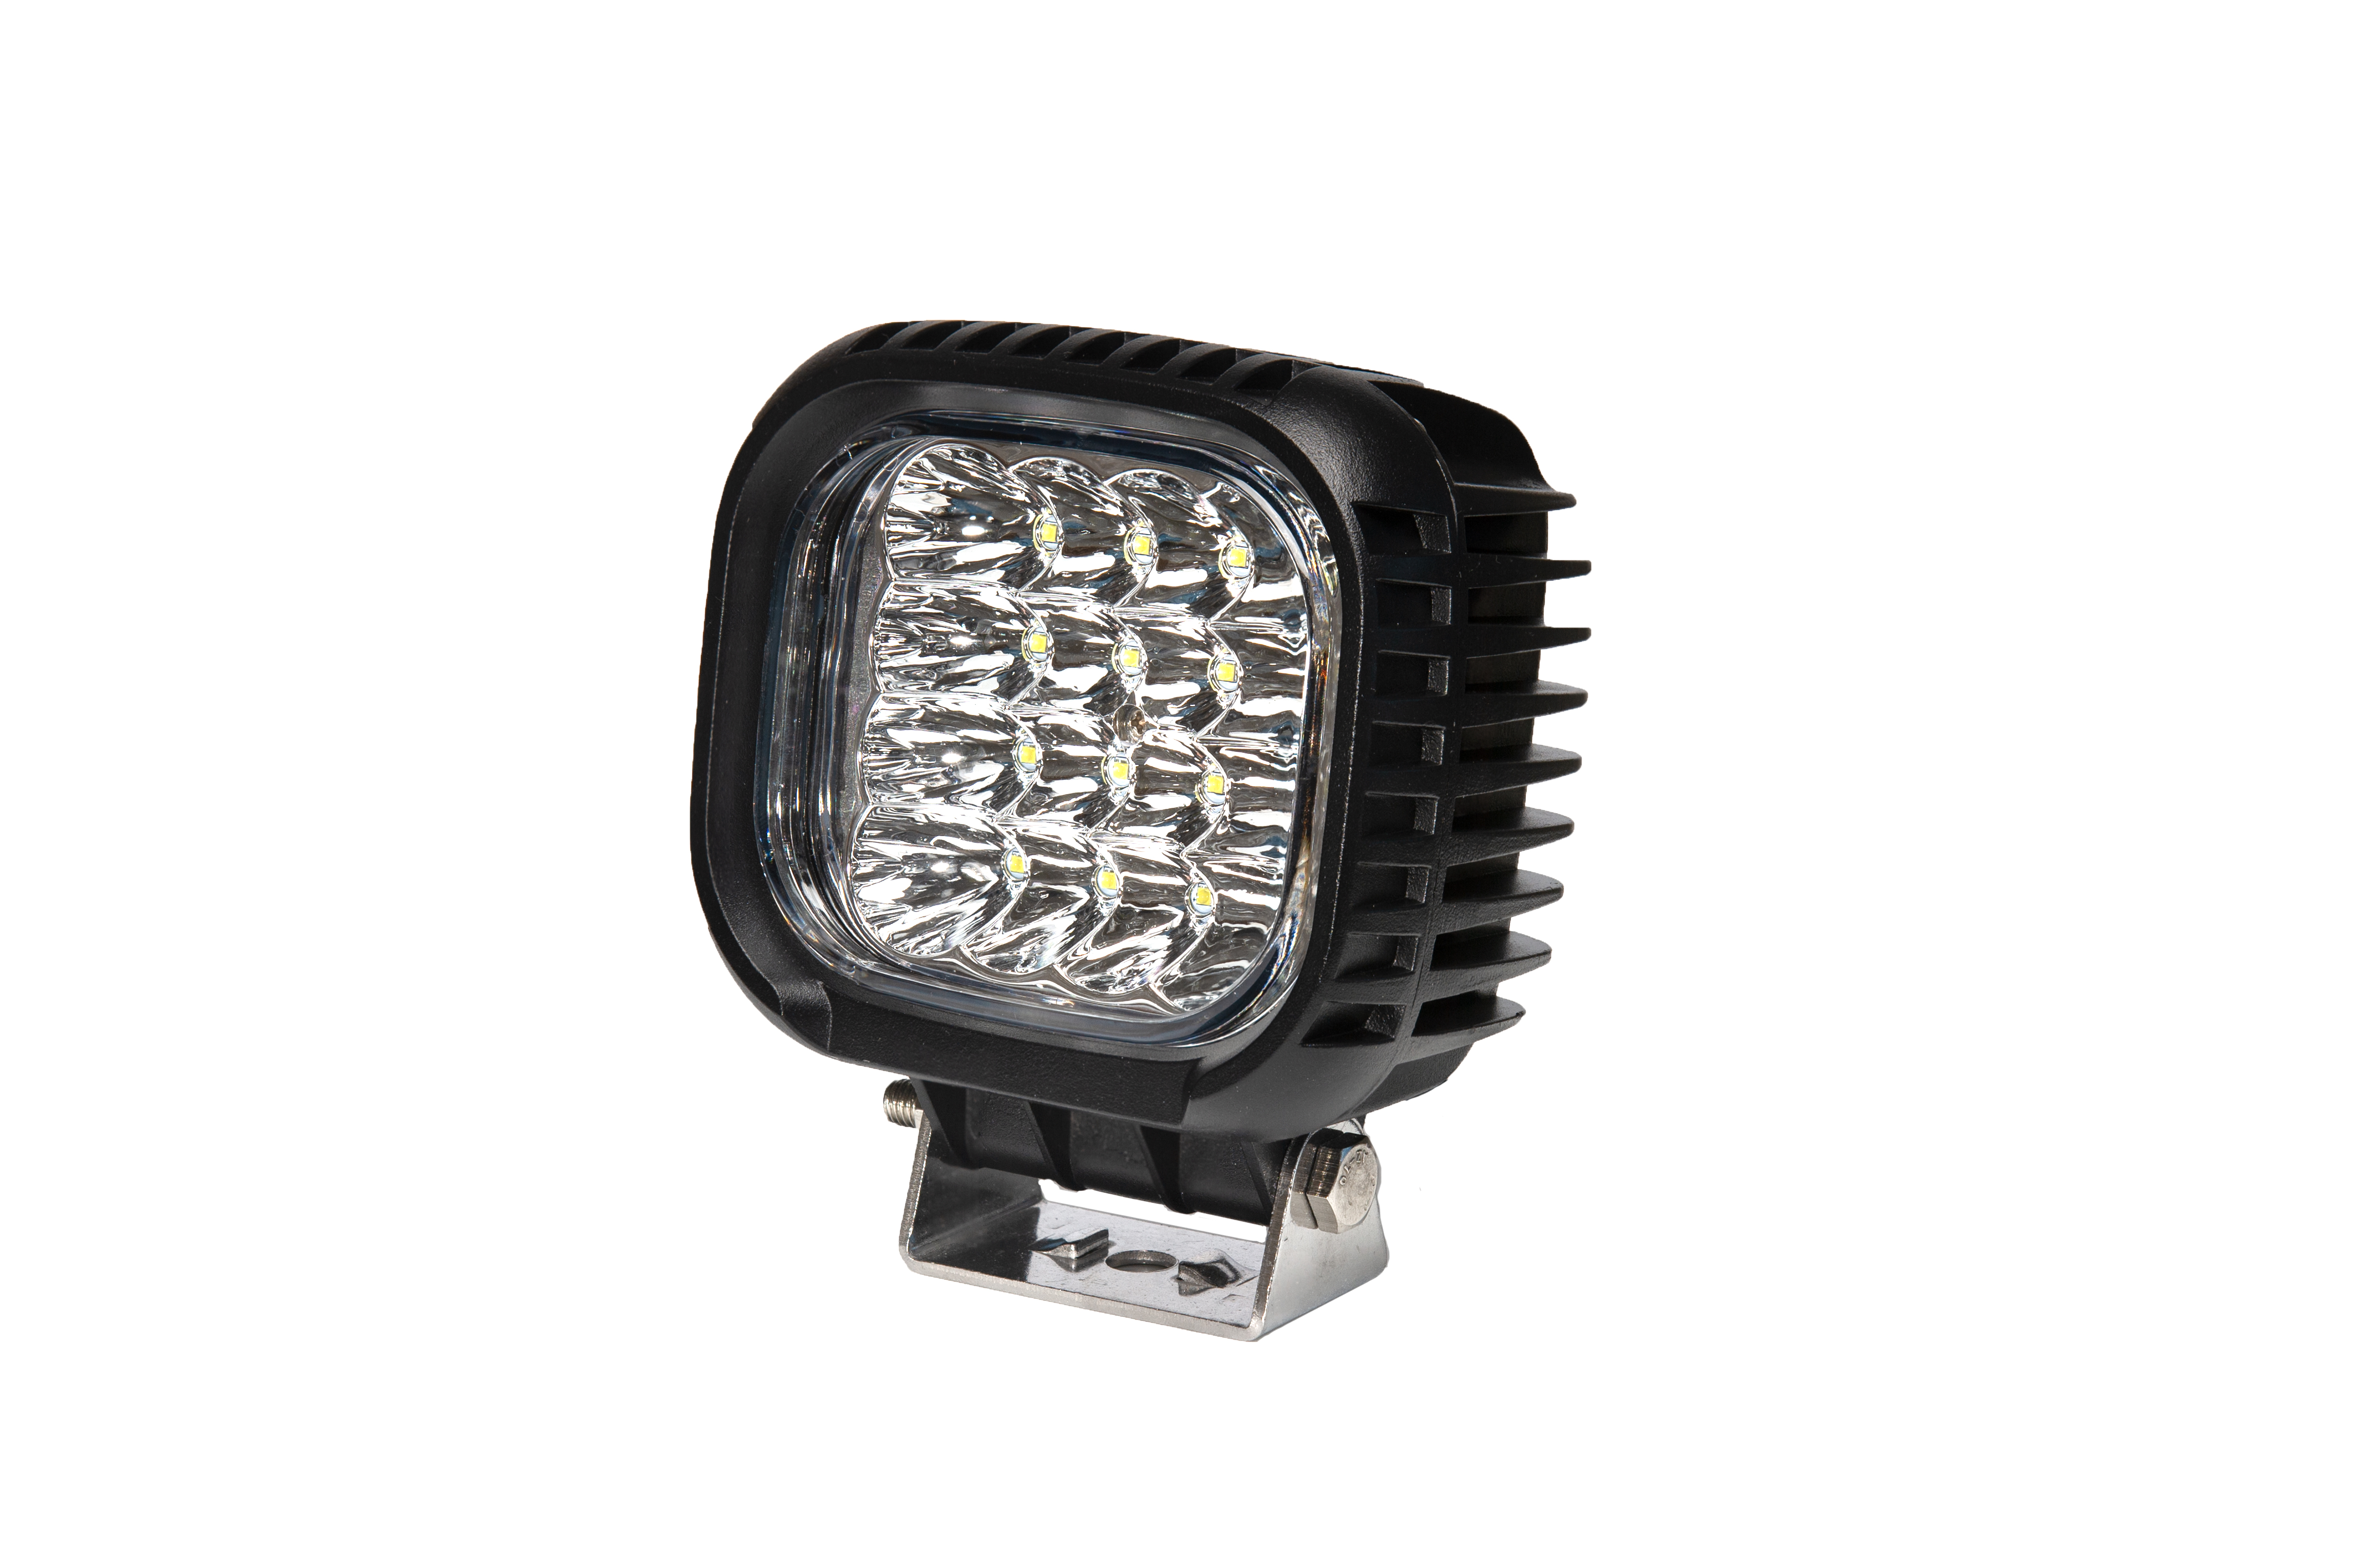 48W LED Work Light Fog Lights 12V IP67 Spot/Flood Fog Light Off Road Tractor Train Bus Boat Floodlight ATV SUV Car Accessories-in Car Light Assembly from Automobiles & Motorcycles